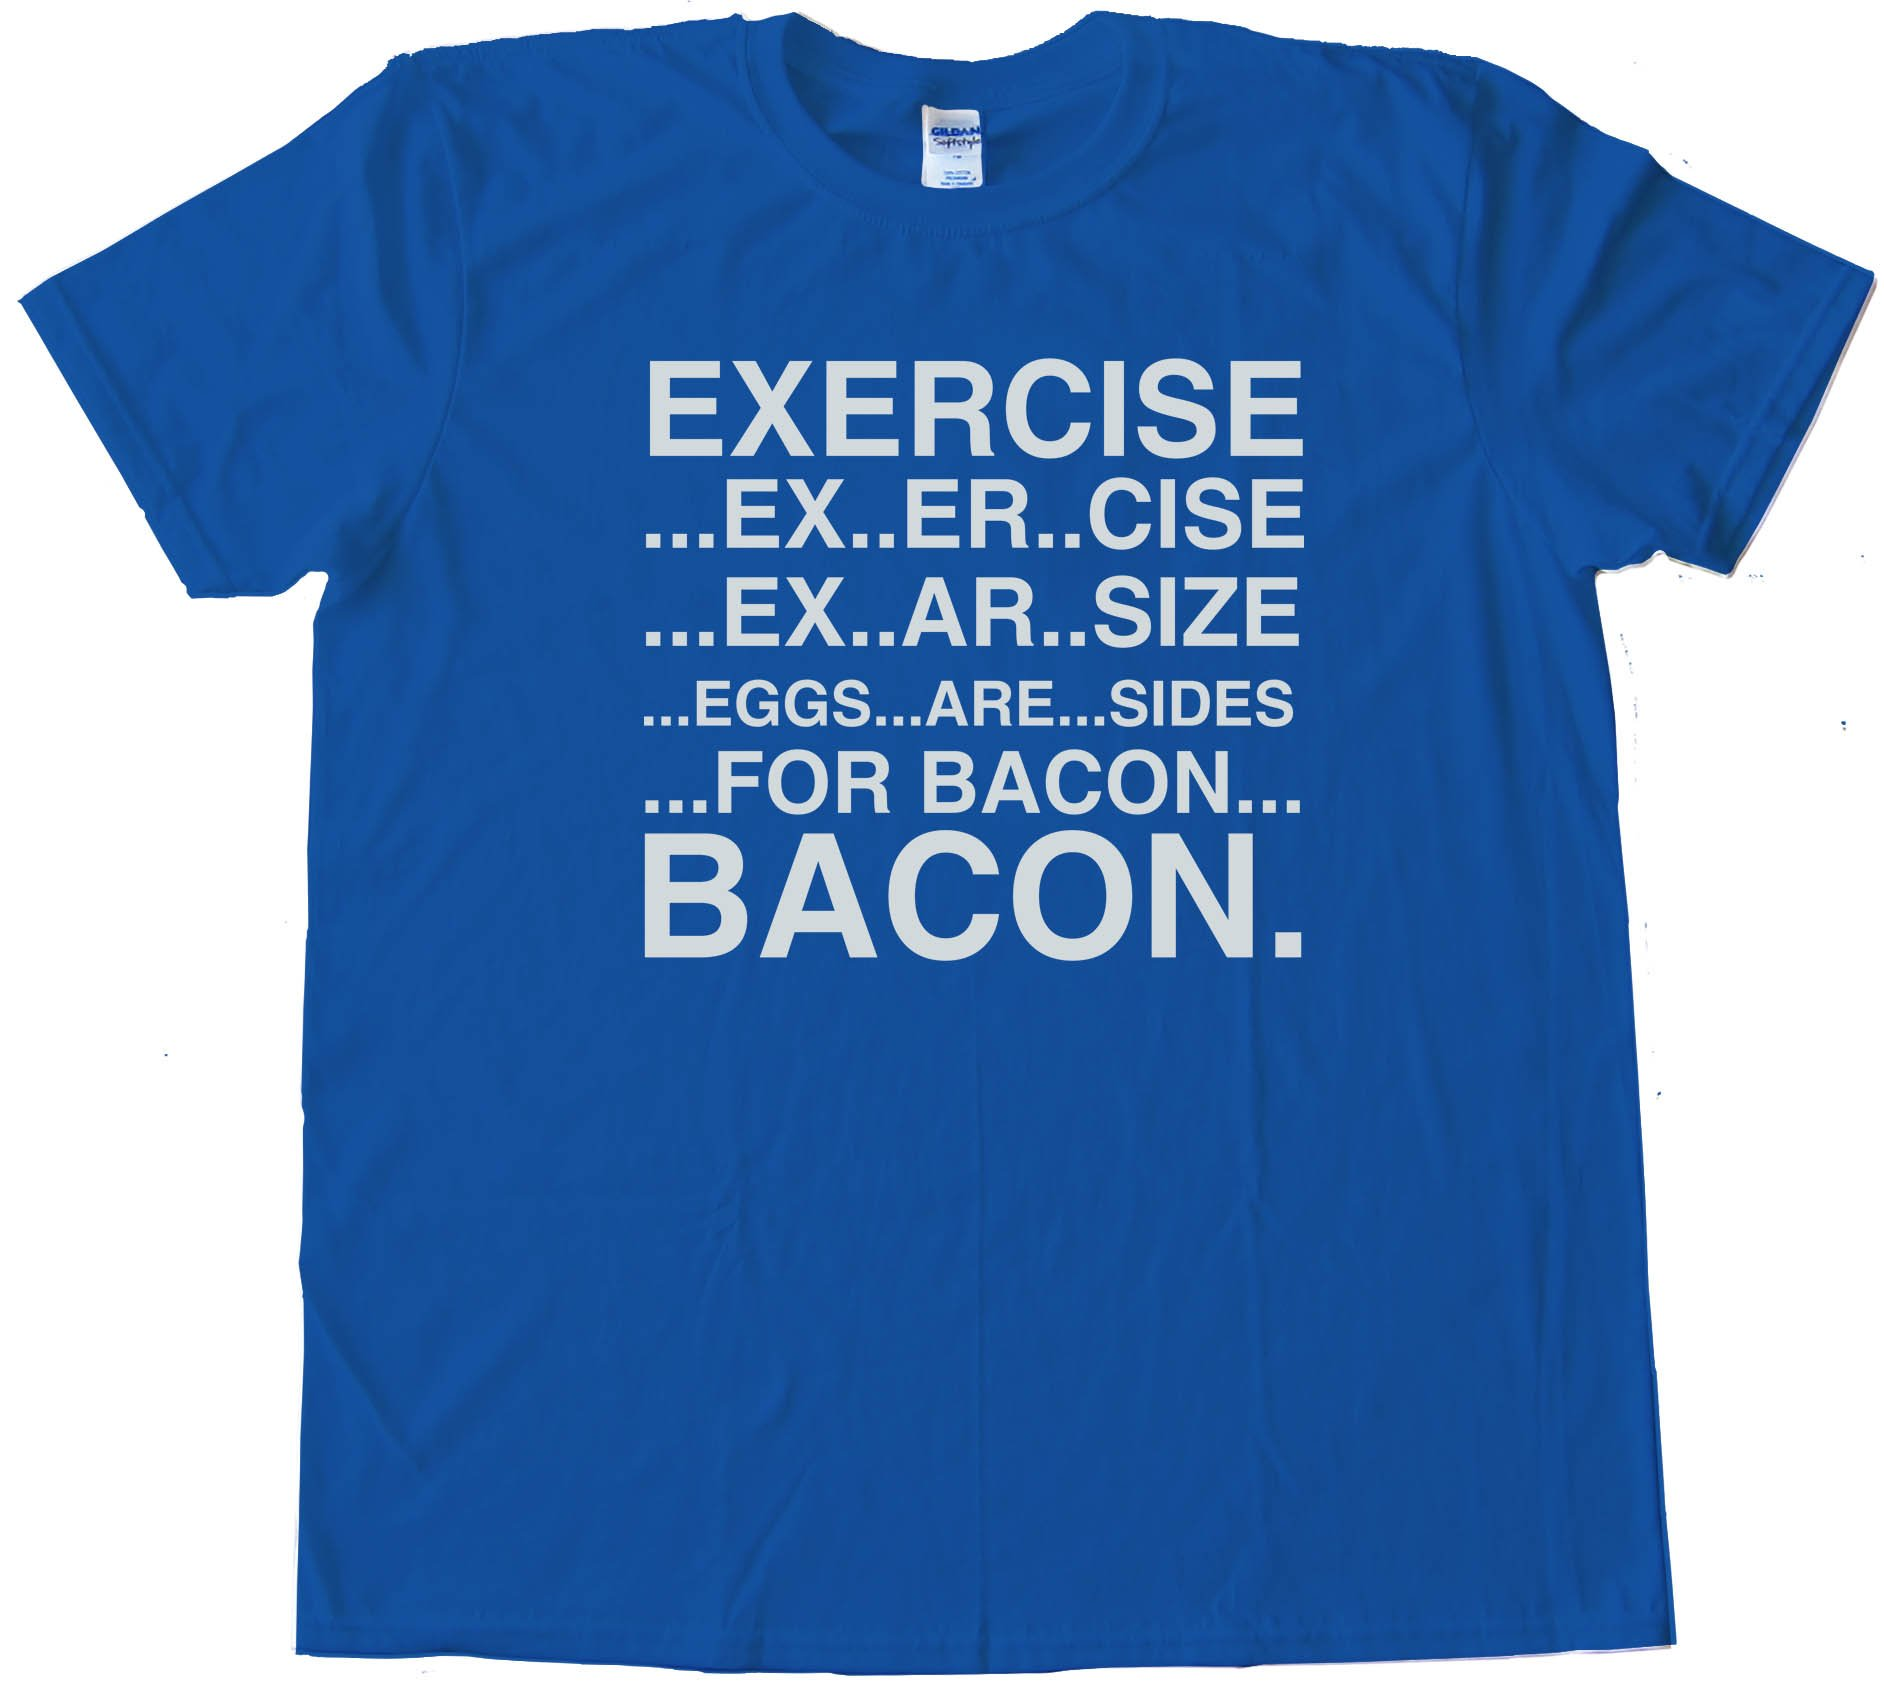 Eggs Are Sides For Bacon Exercise - Tee Shirt